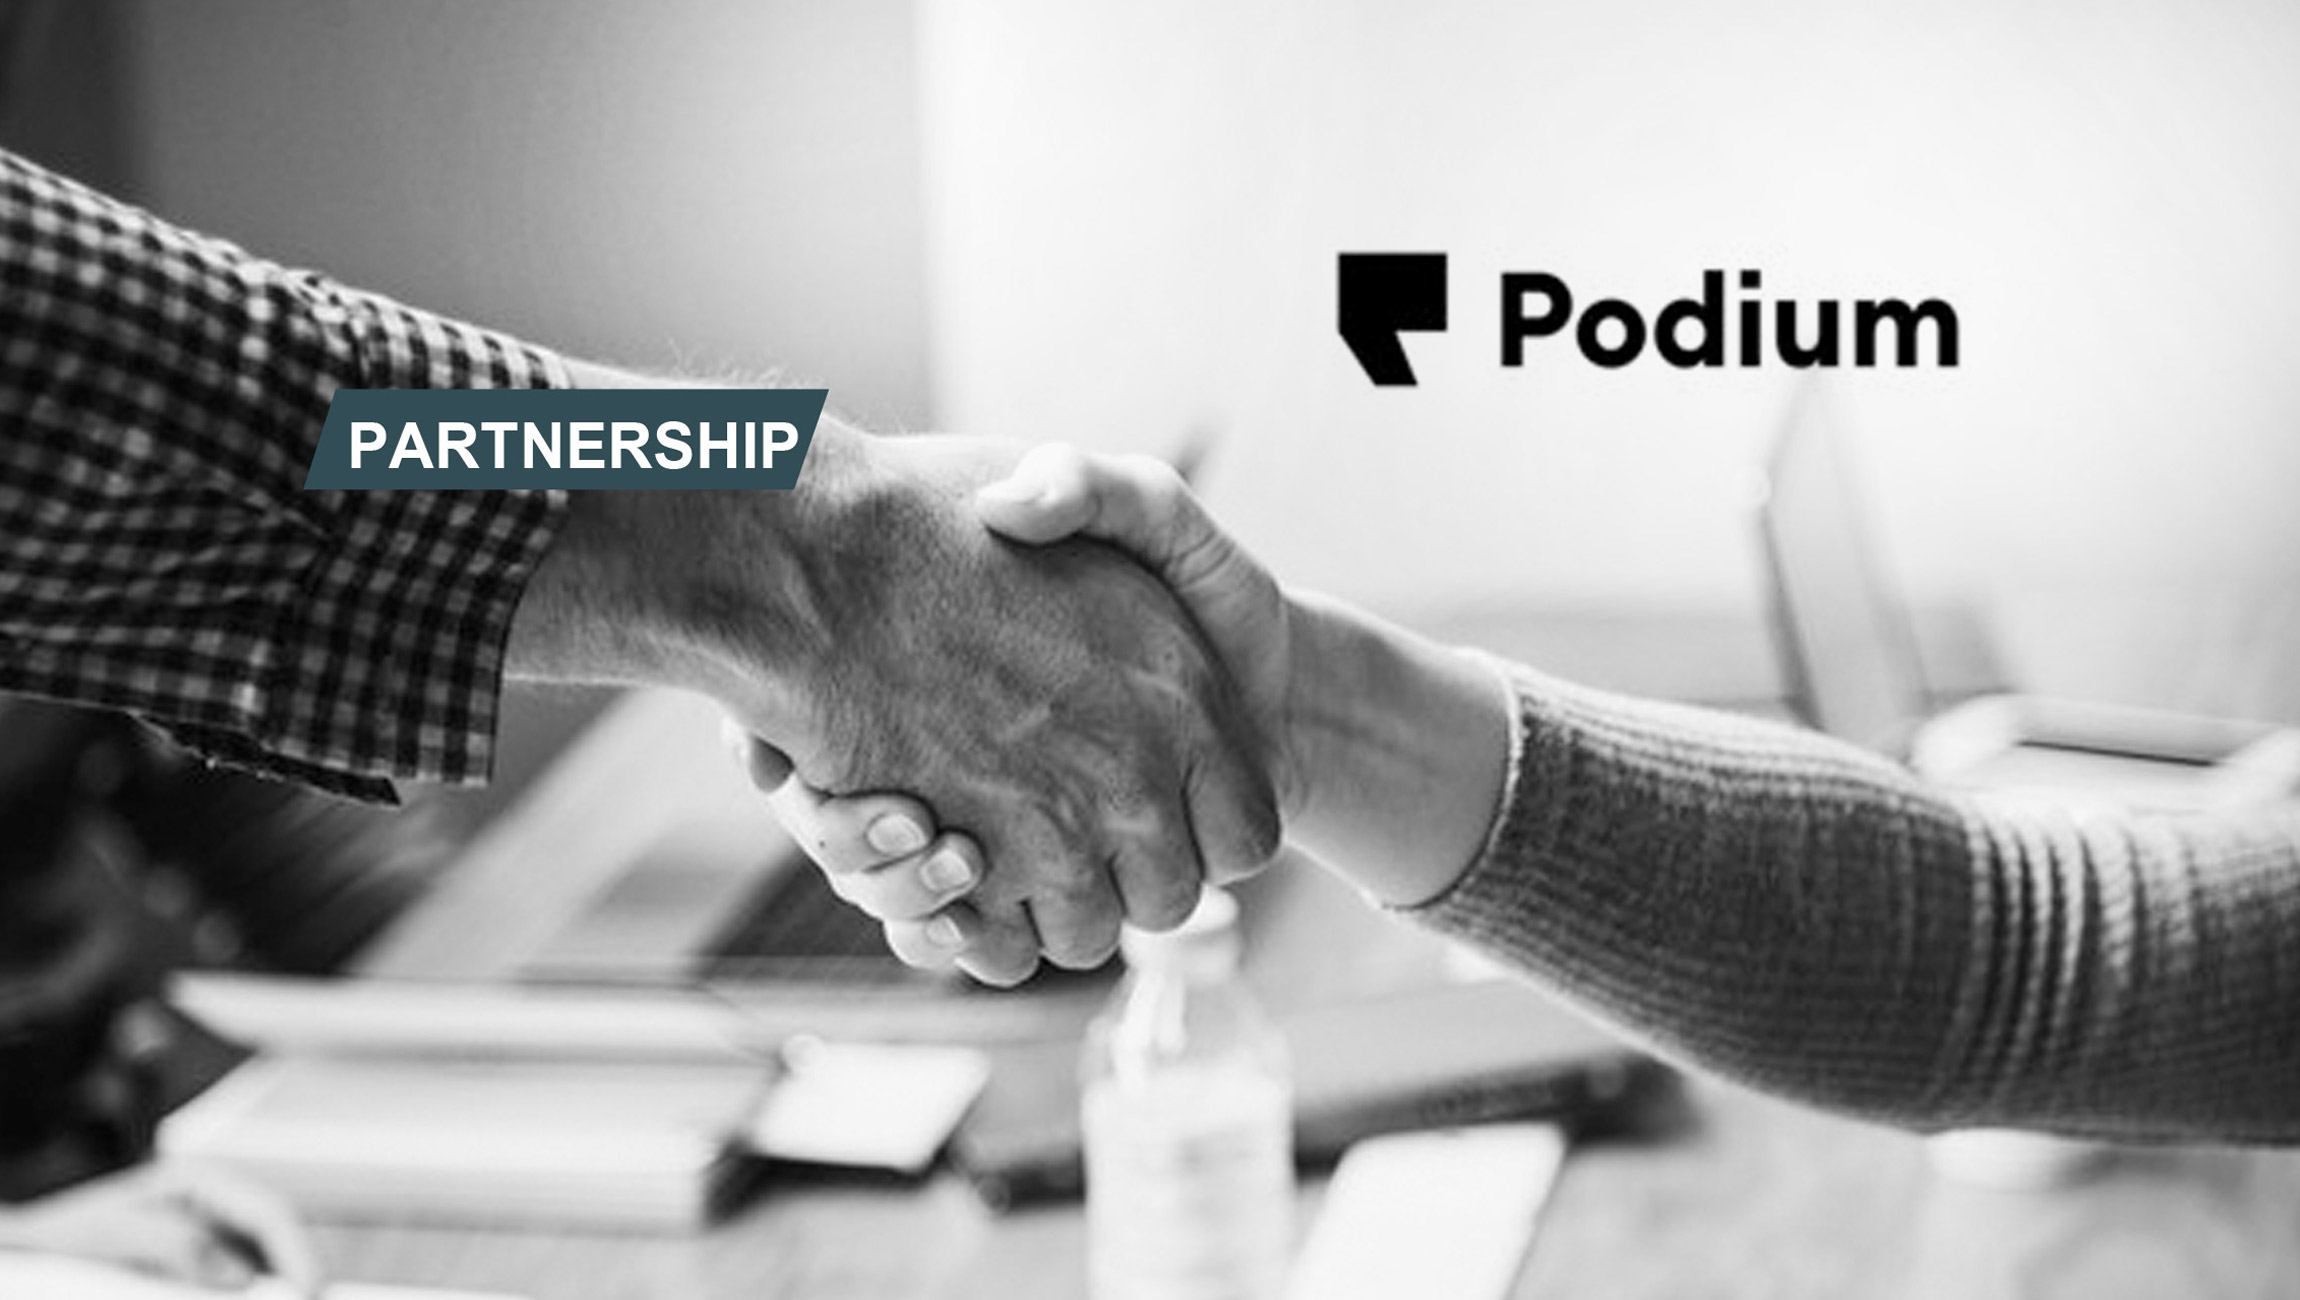 American Rental Partners With Podium To Streamline Transactions And Improve Customer Feedback